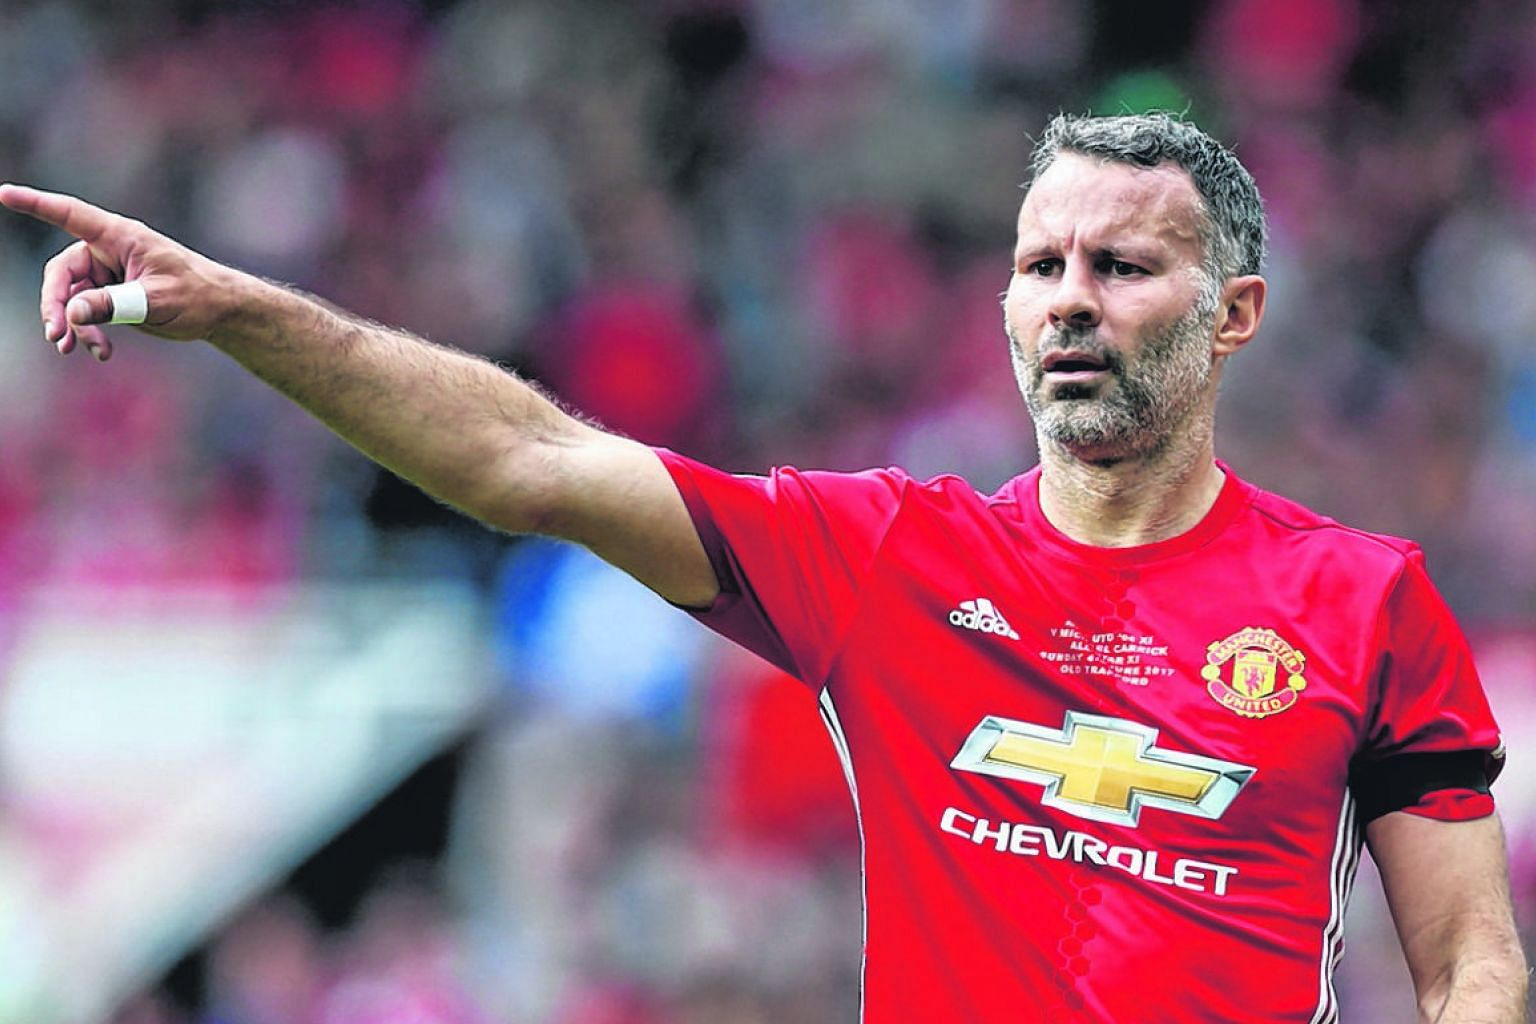 Ryan Giggs' dugout experience has only been that of a caretaker and assistant manager.